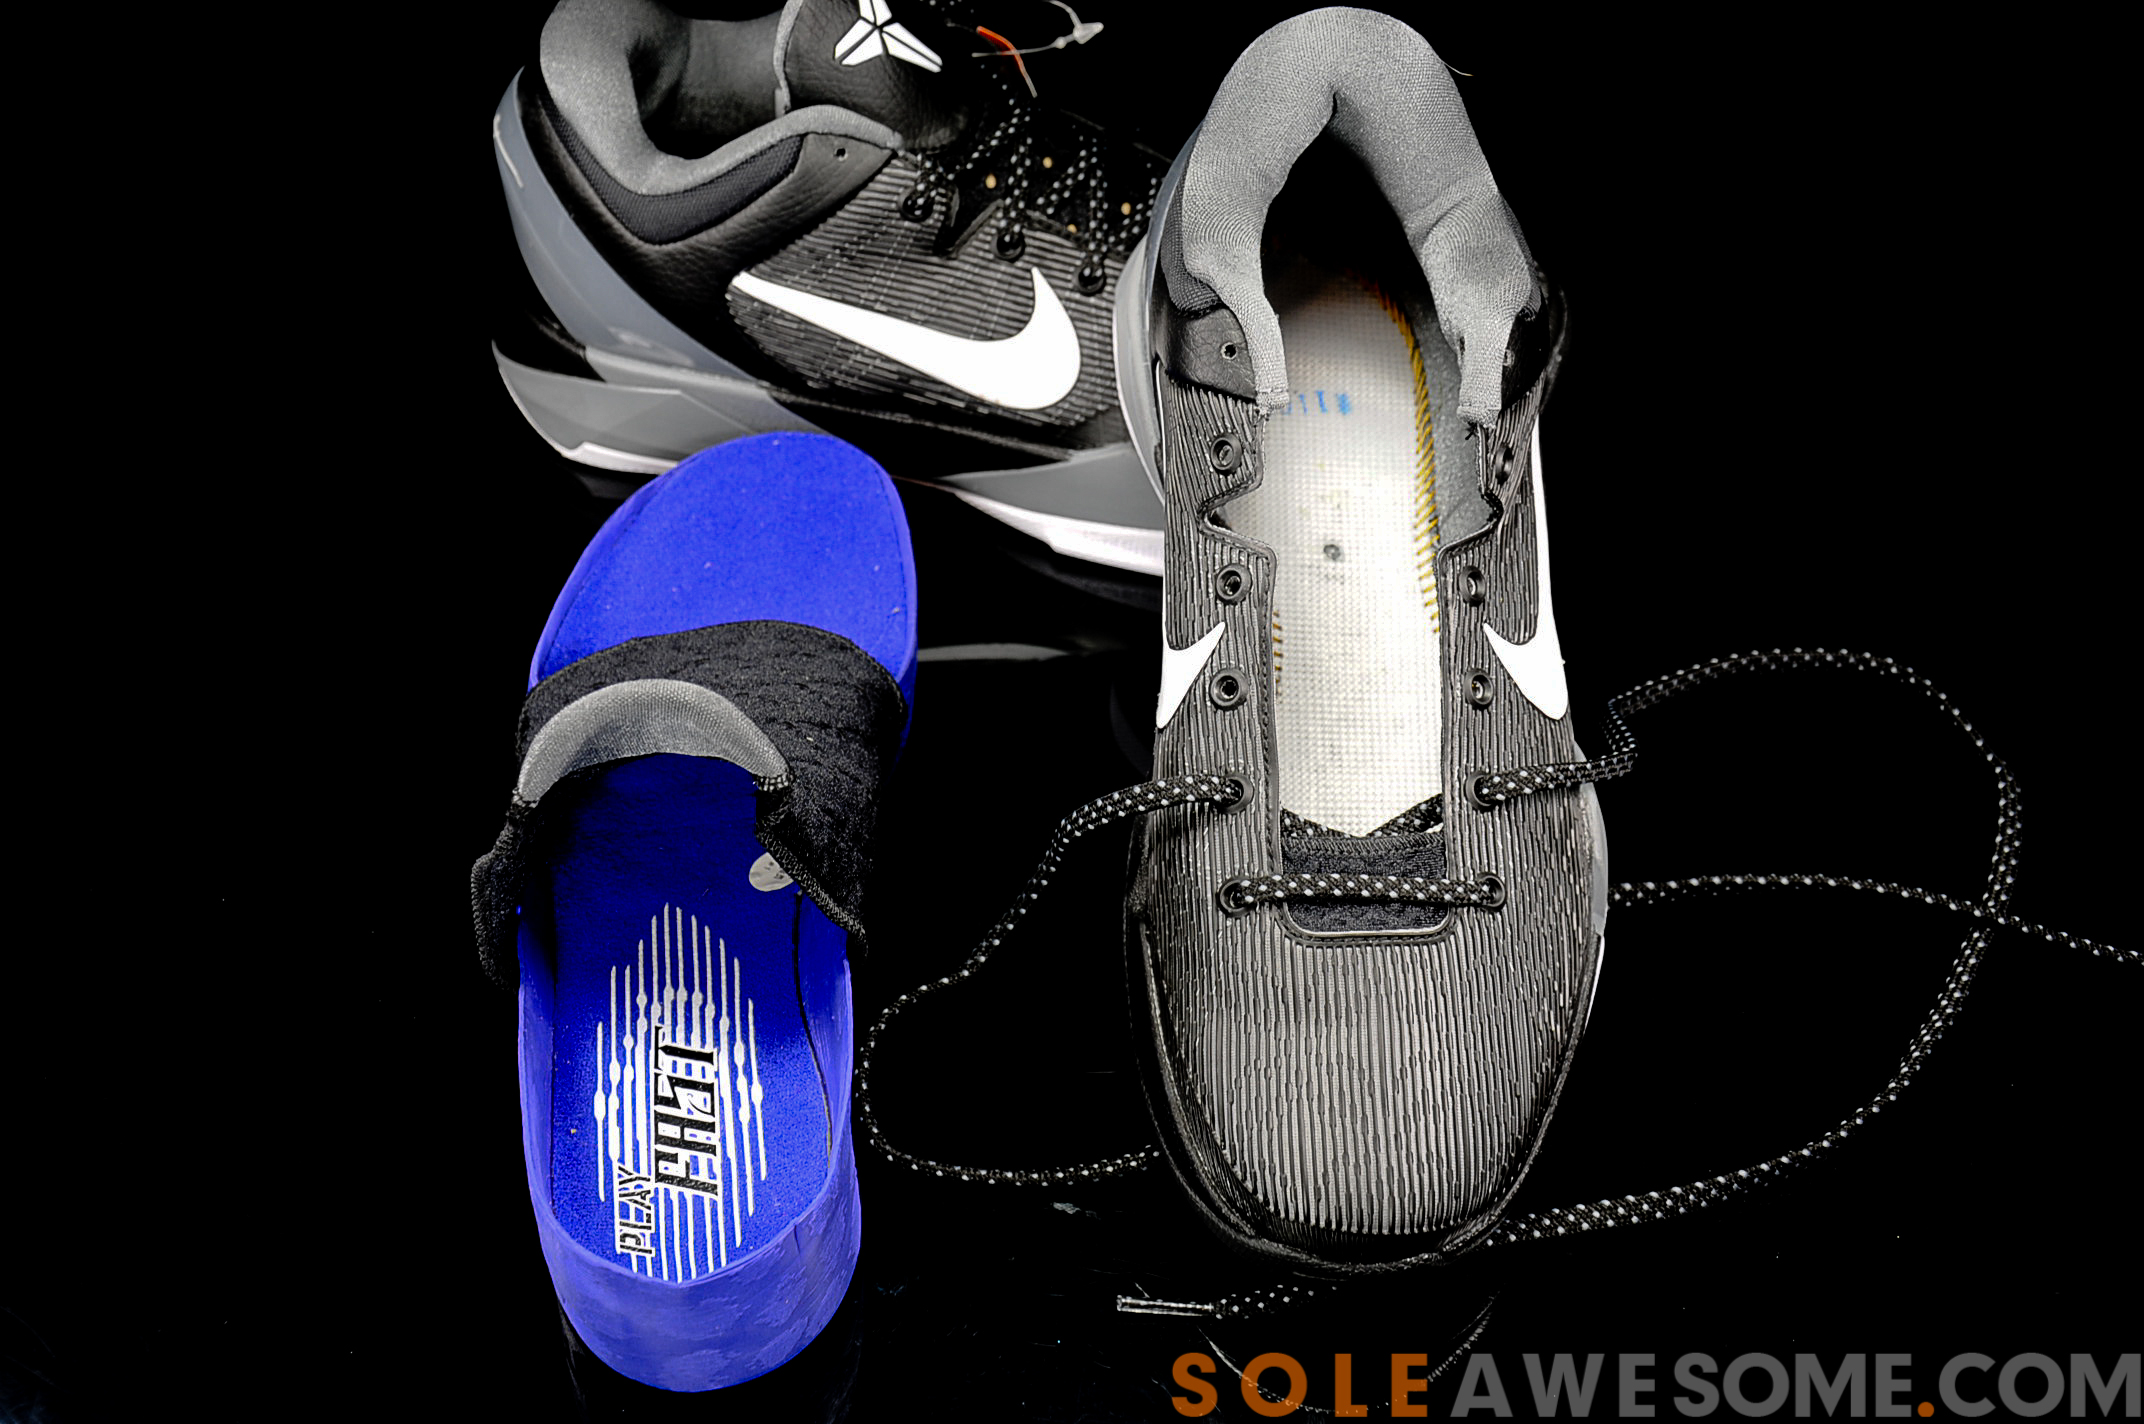 Nike Zoom Kobe VII (7) Black/ Grey- White - New Detailed Images